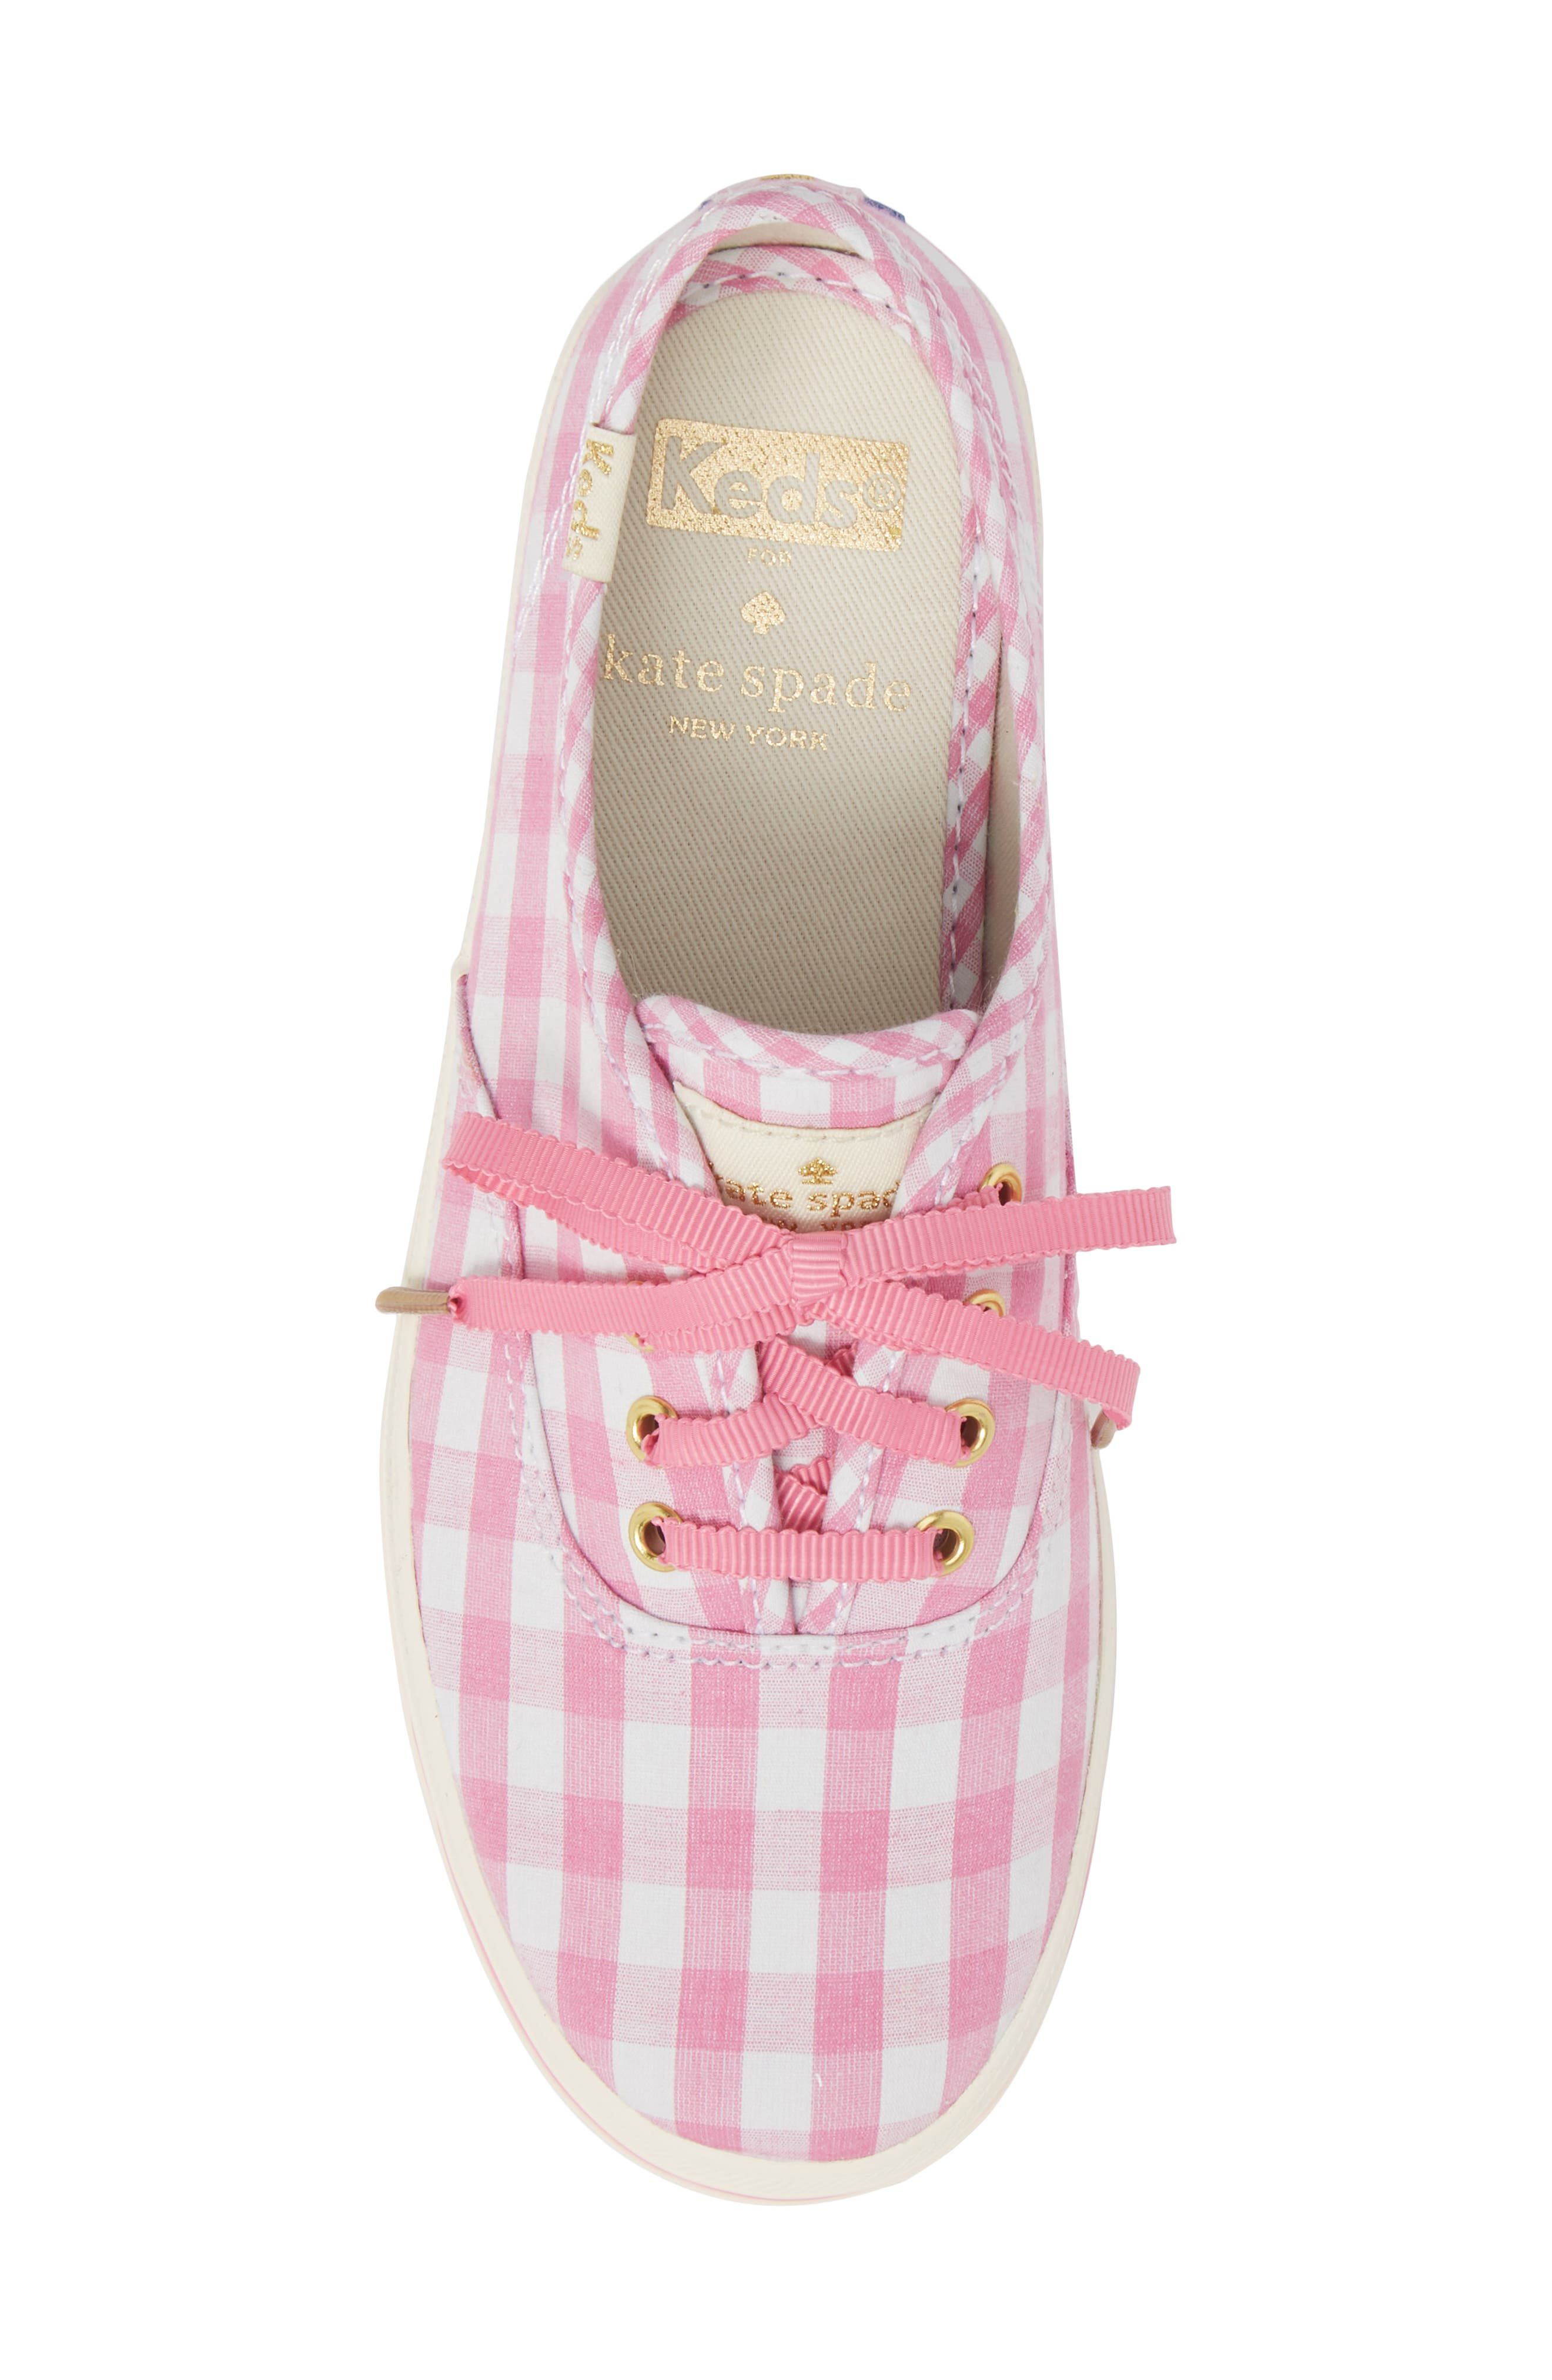 x kate spade new york champion gingham lace-up shoe,                             Alternate thumbnail 5, color,                             650